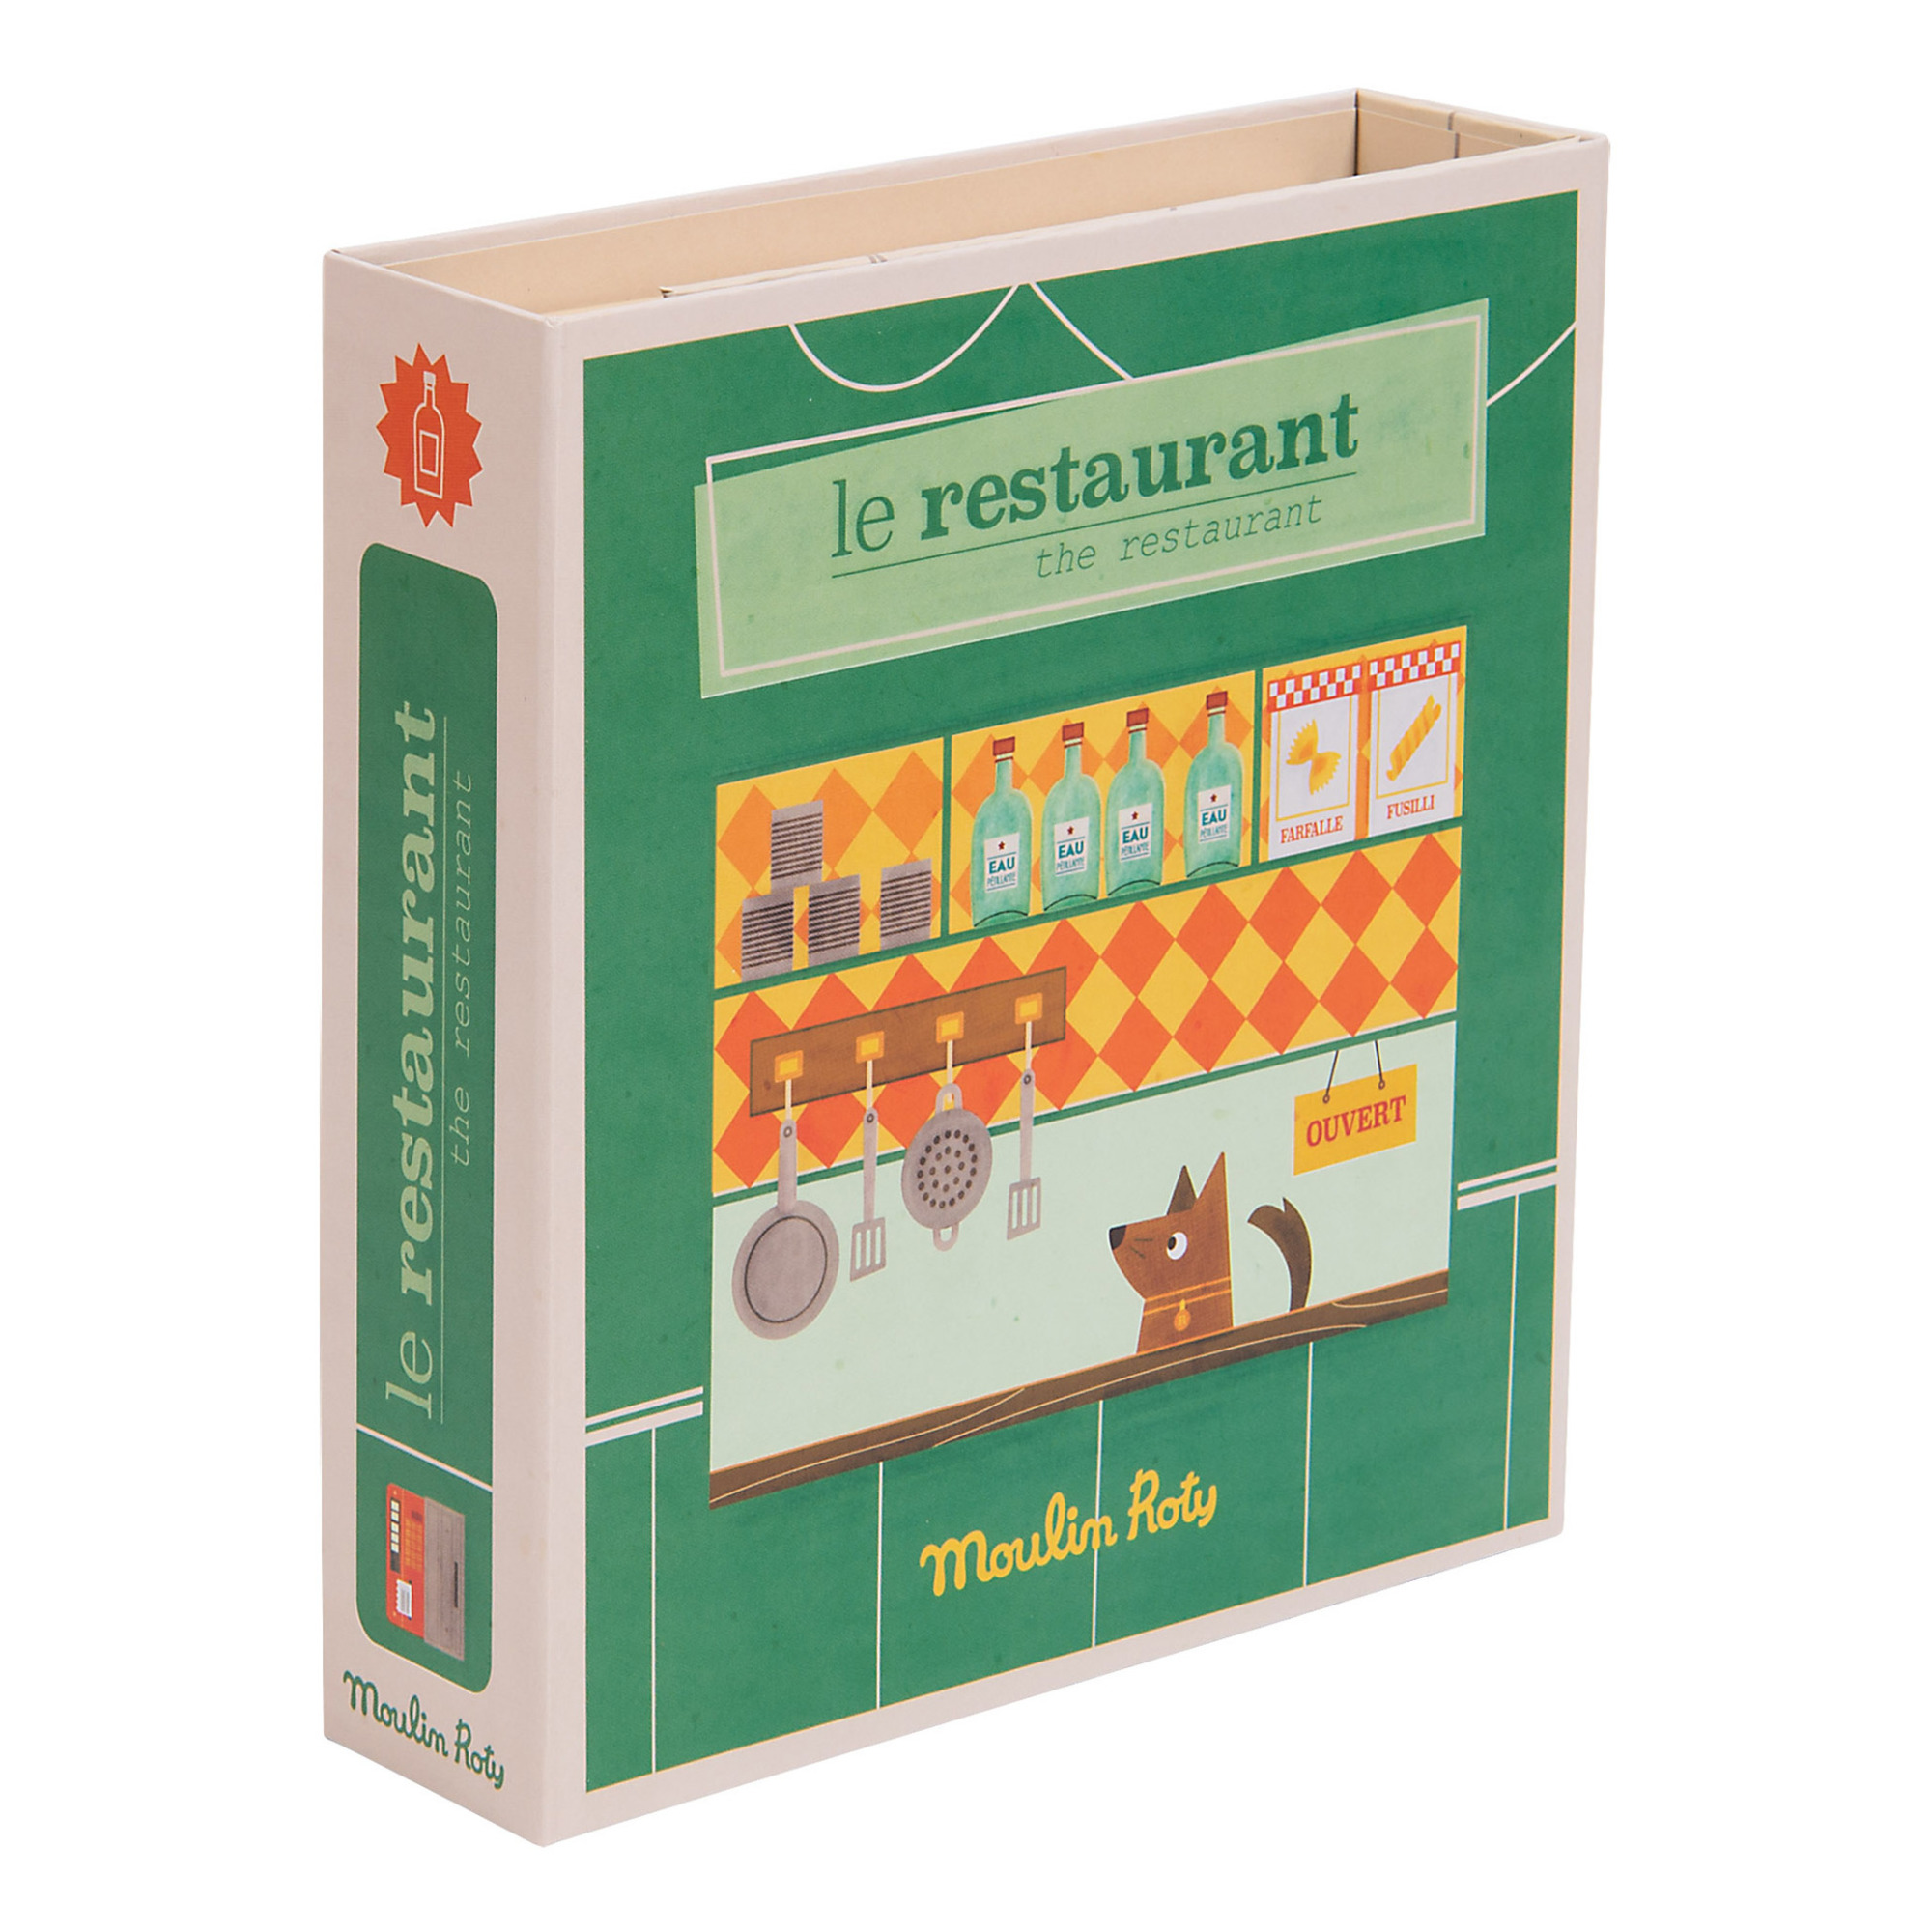 Moulin Roty Les Coffets Metier Restaurant Set